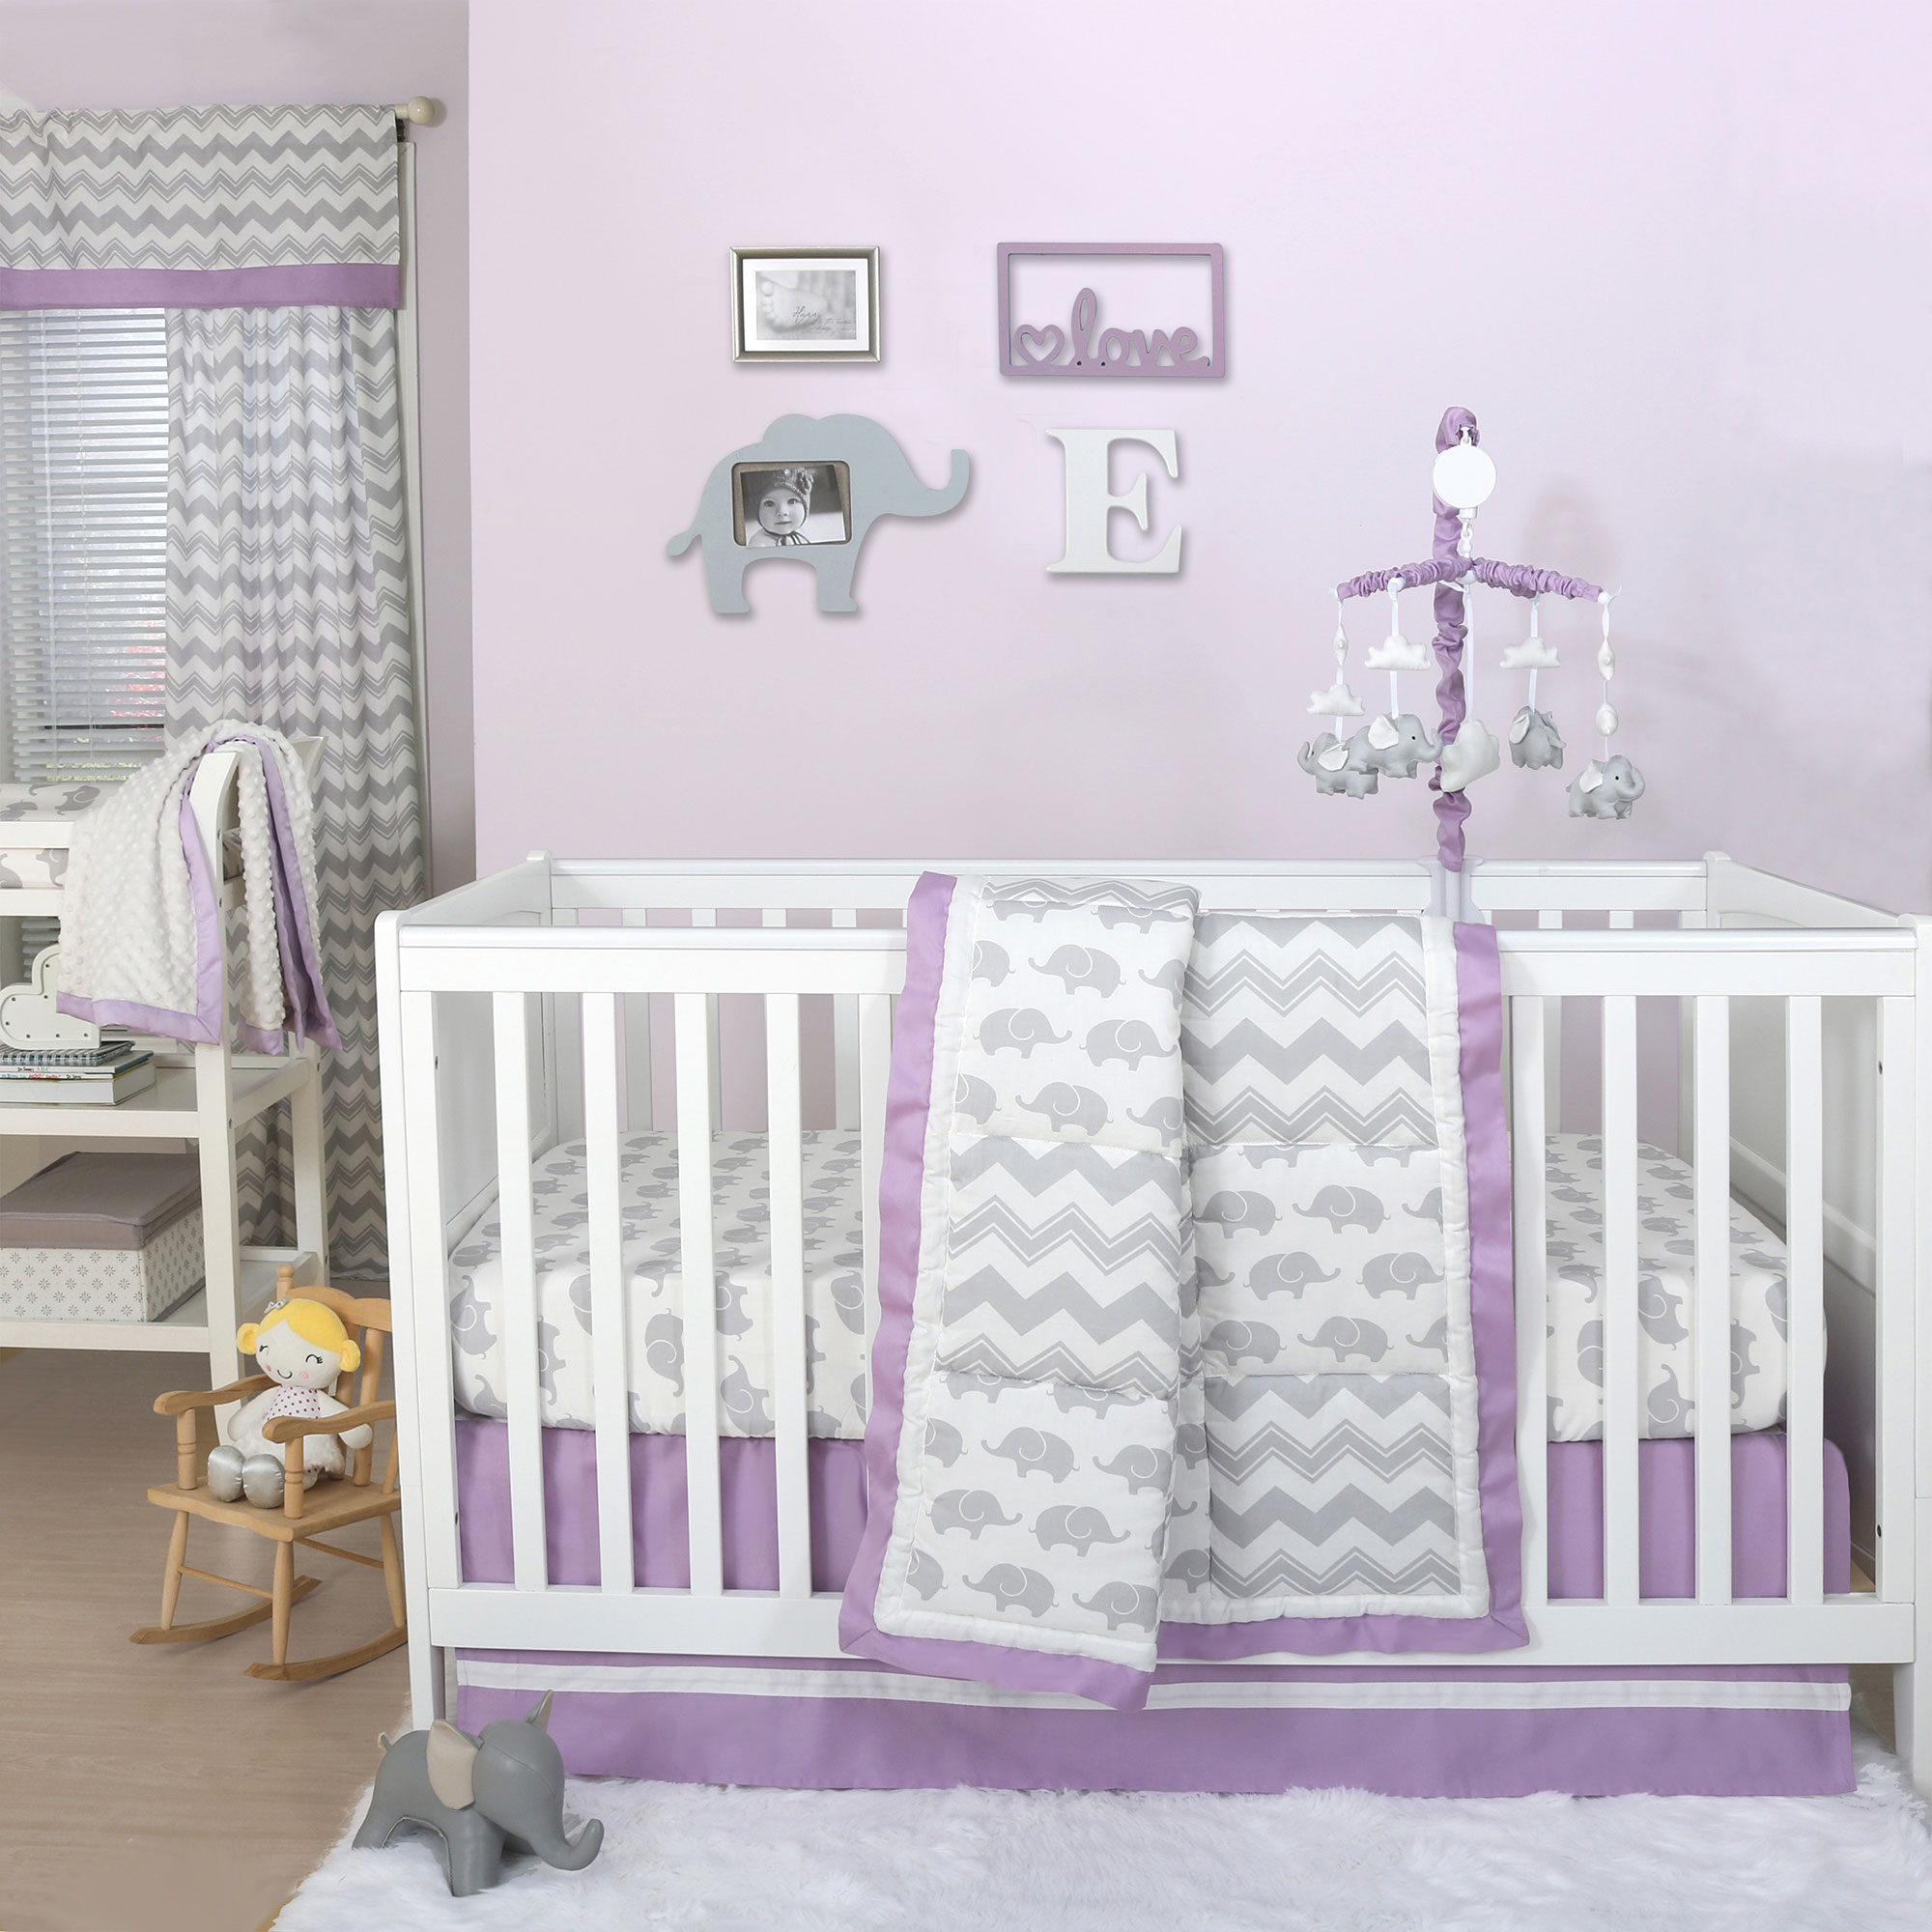 Beau Details About Grey Elephant And Chevron Patchwork 3 Piece Crib Bedding Set  With Purple Trim